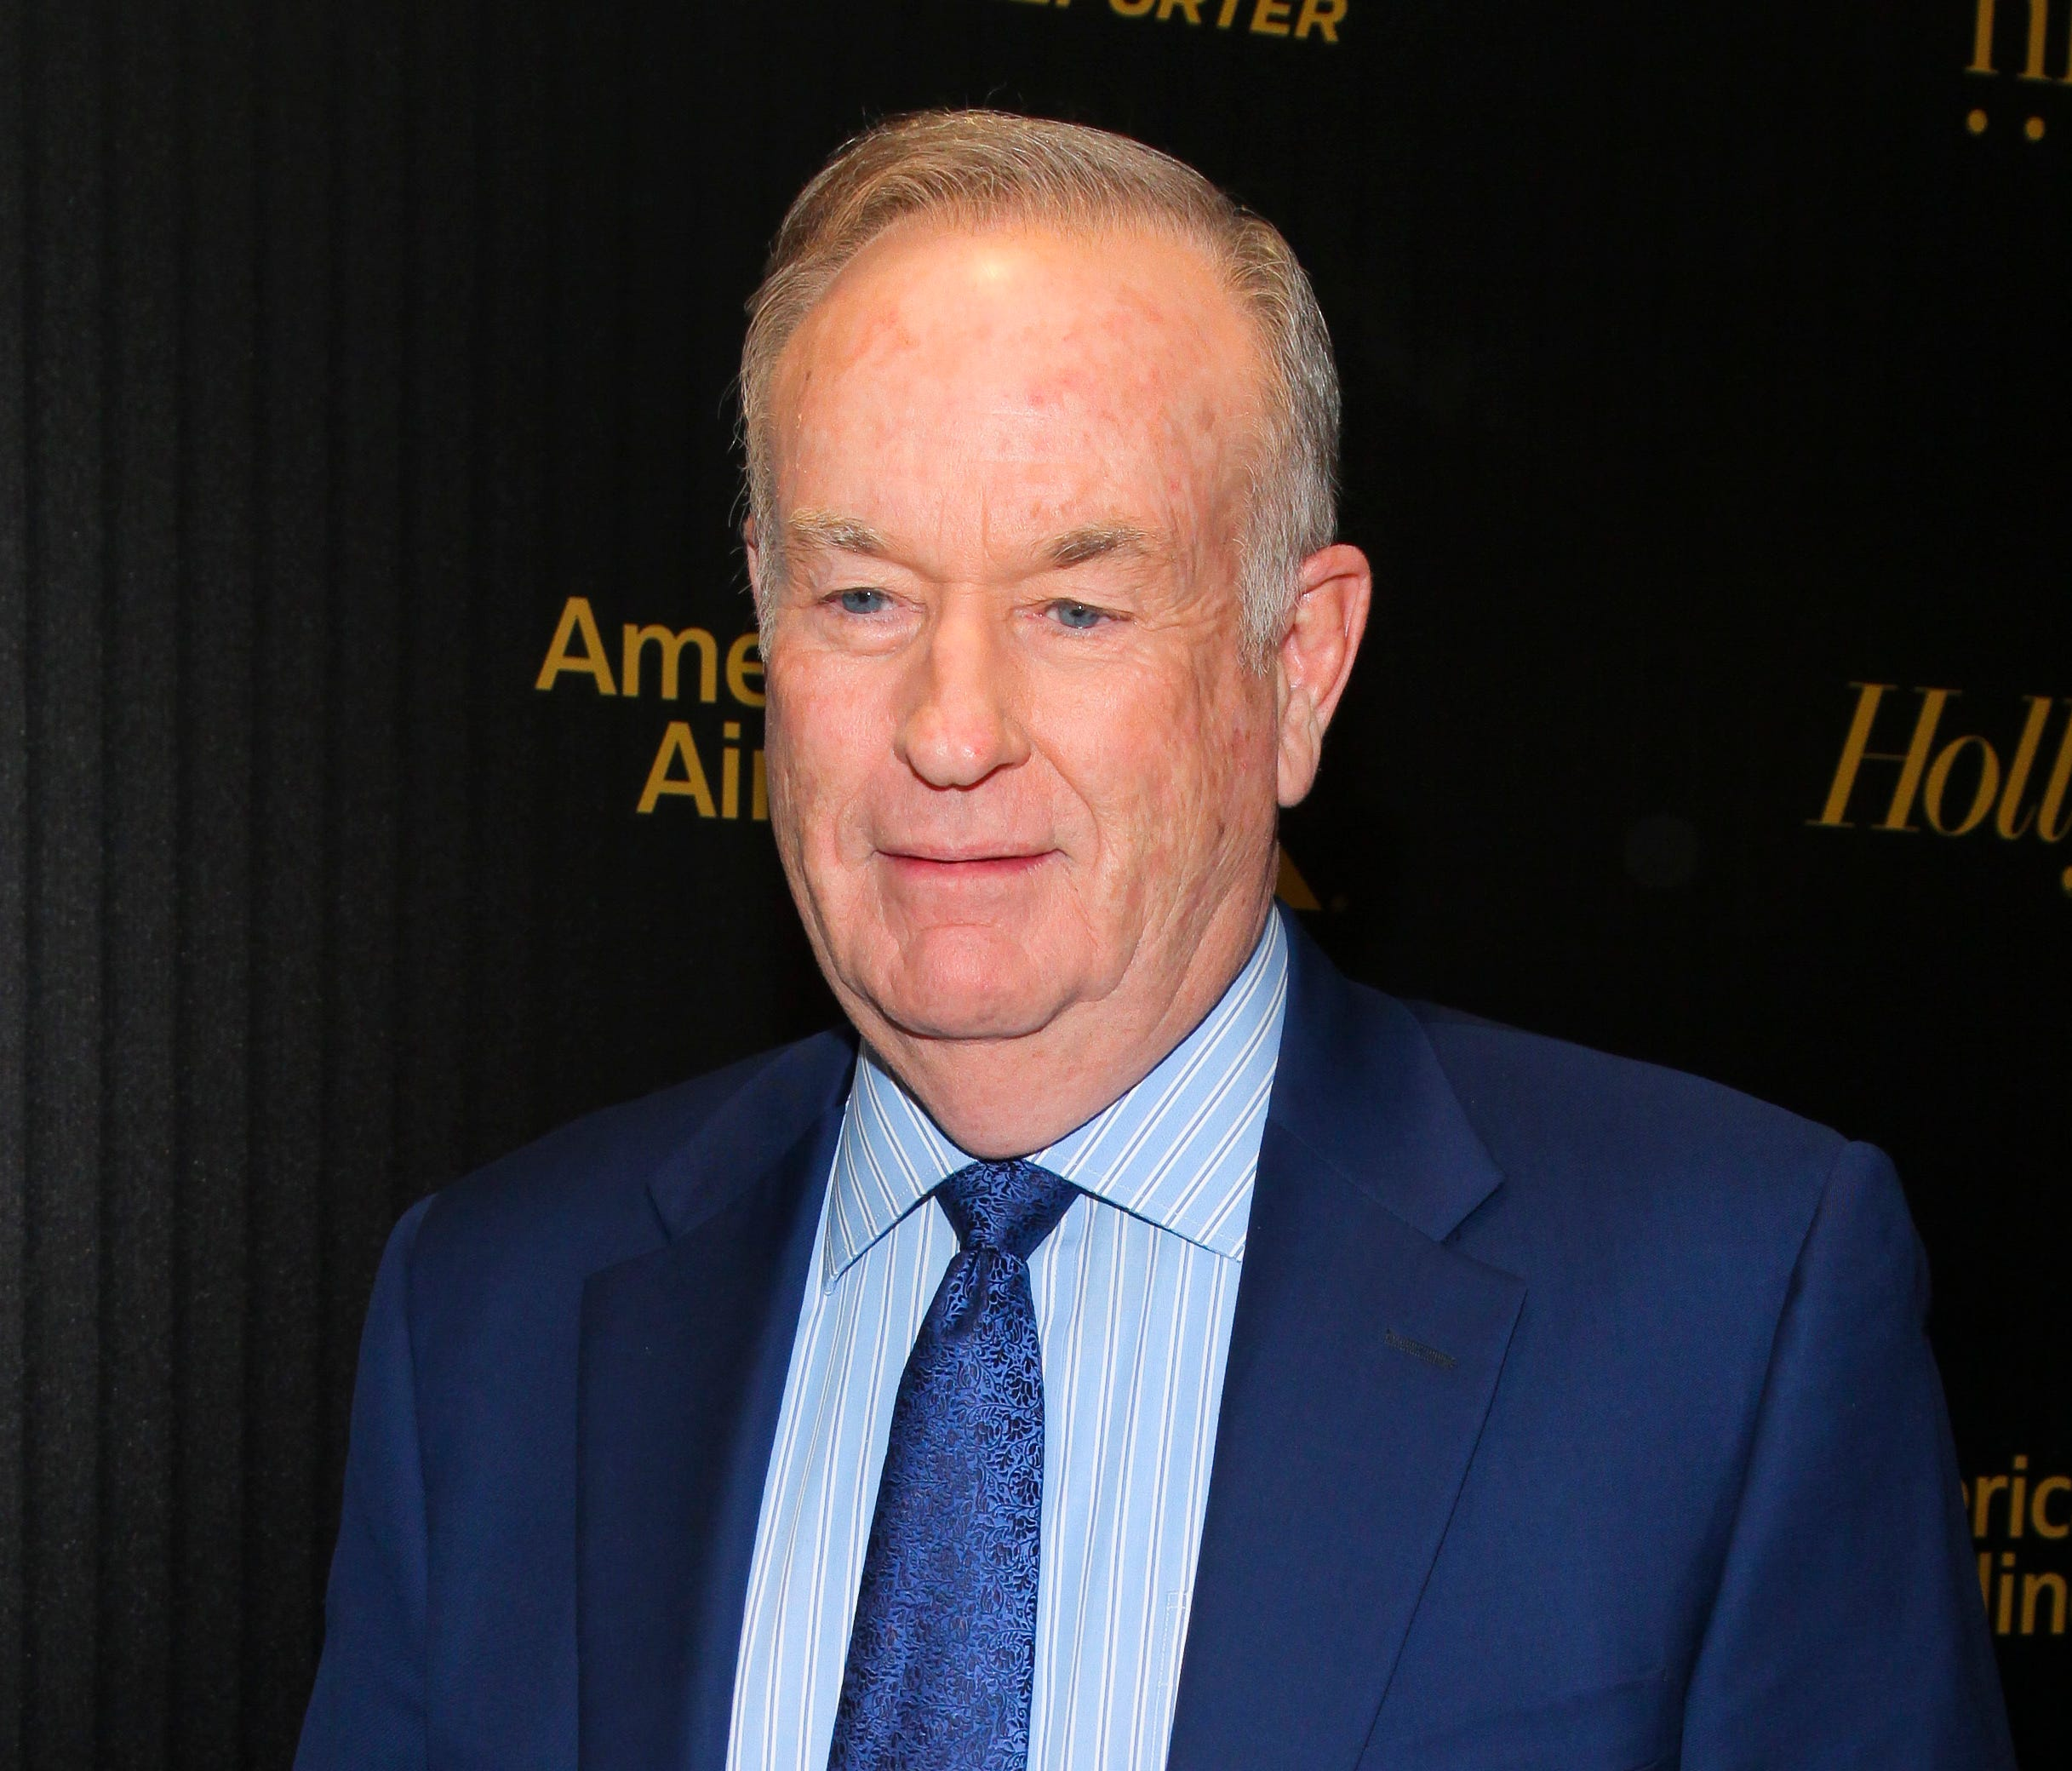 In this April 6, 2016, file photo, Bill O'Reilly attends The Hollywood Reporter's